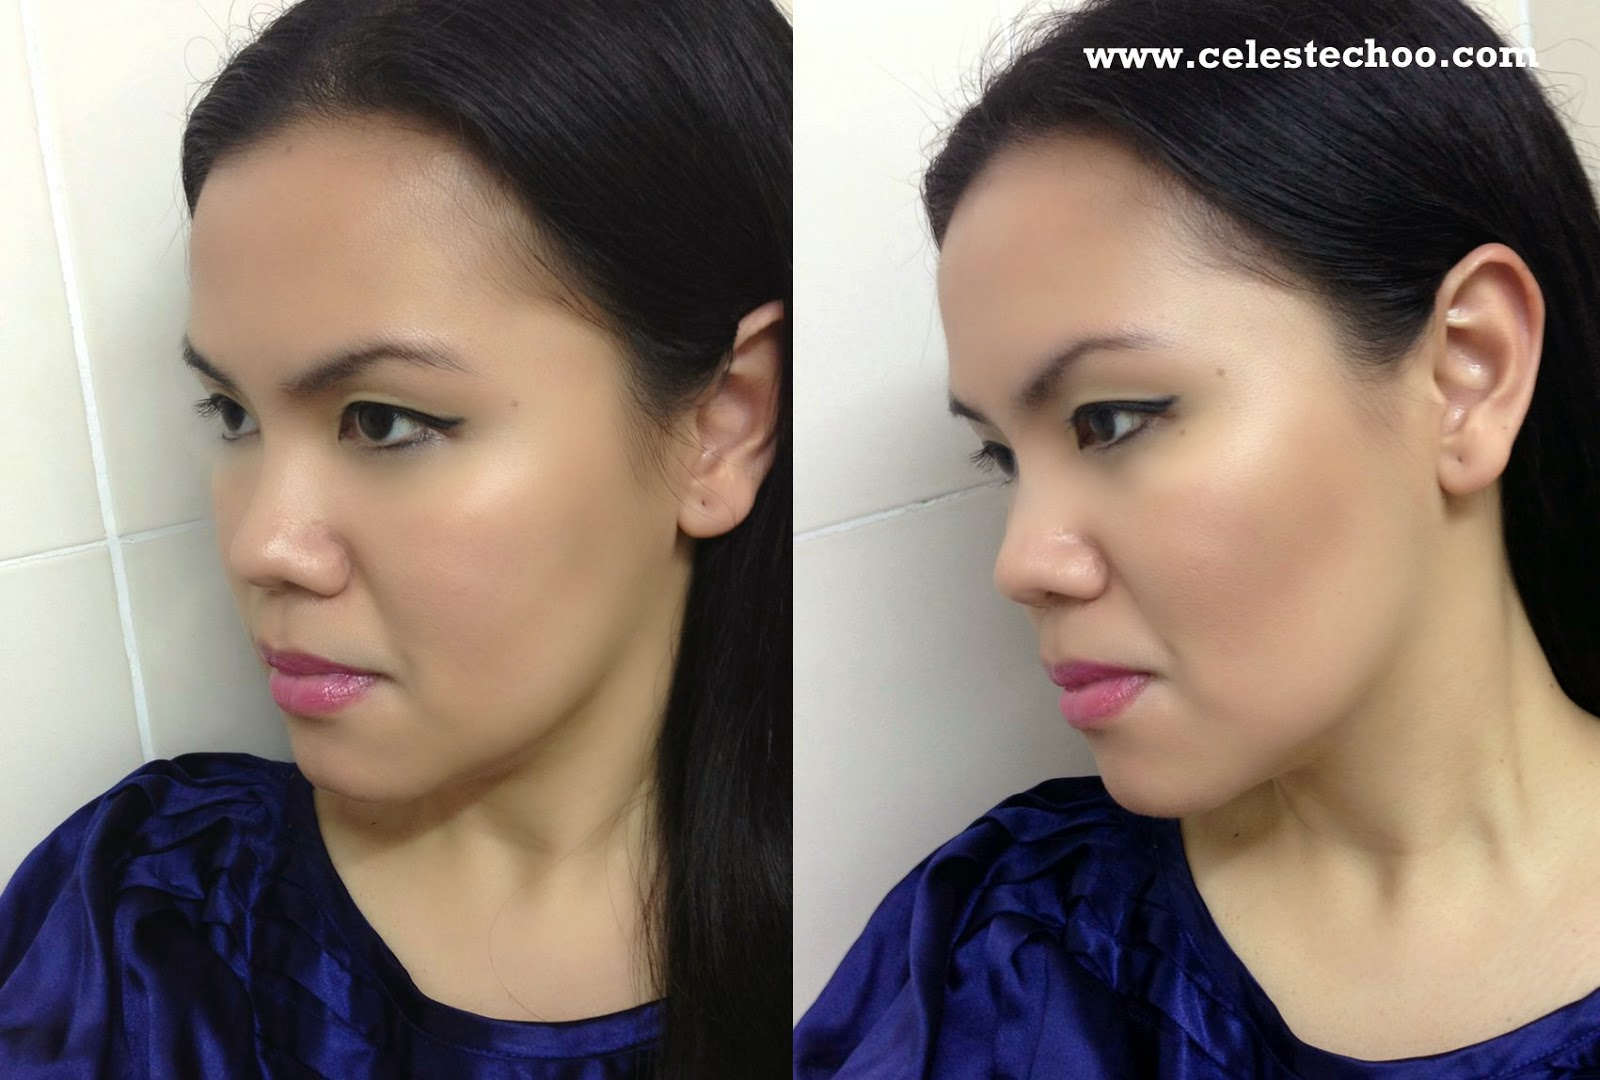 image-nars-contour-blush-makeup-beauty-blog-before-and-after